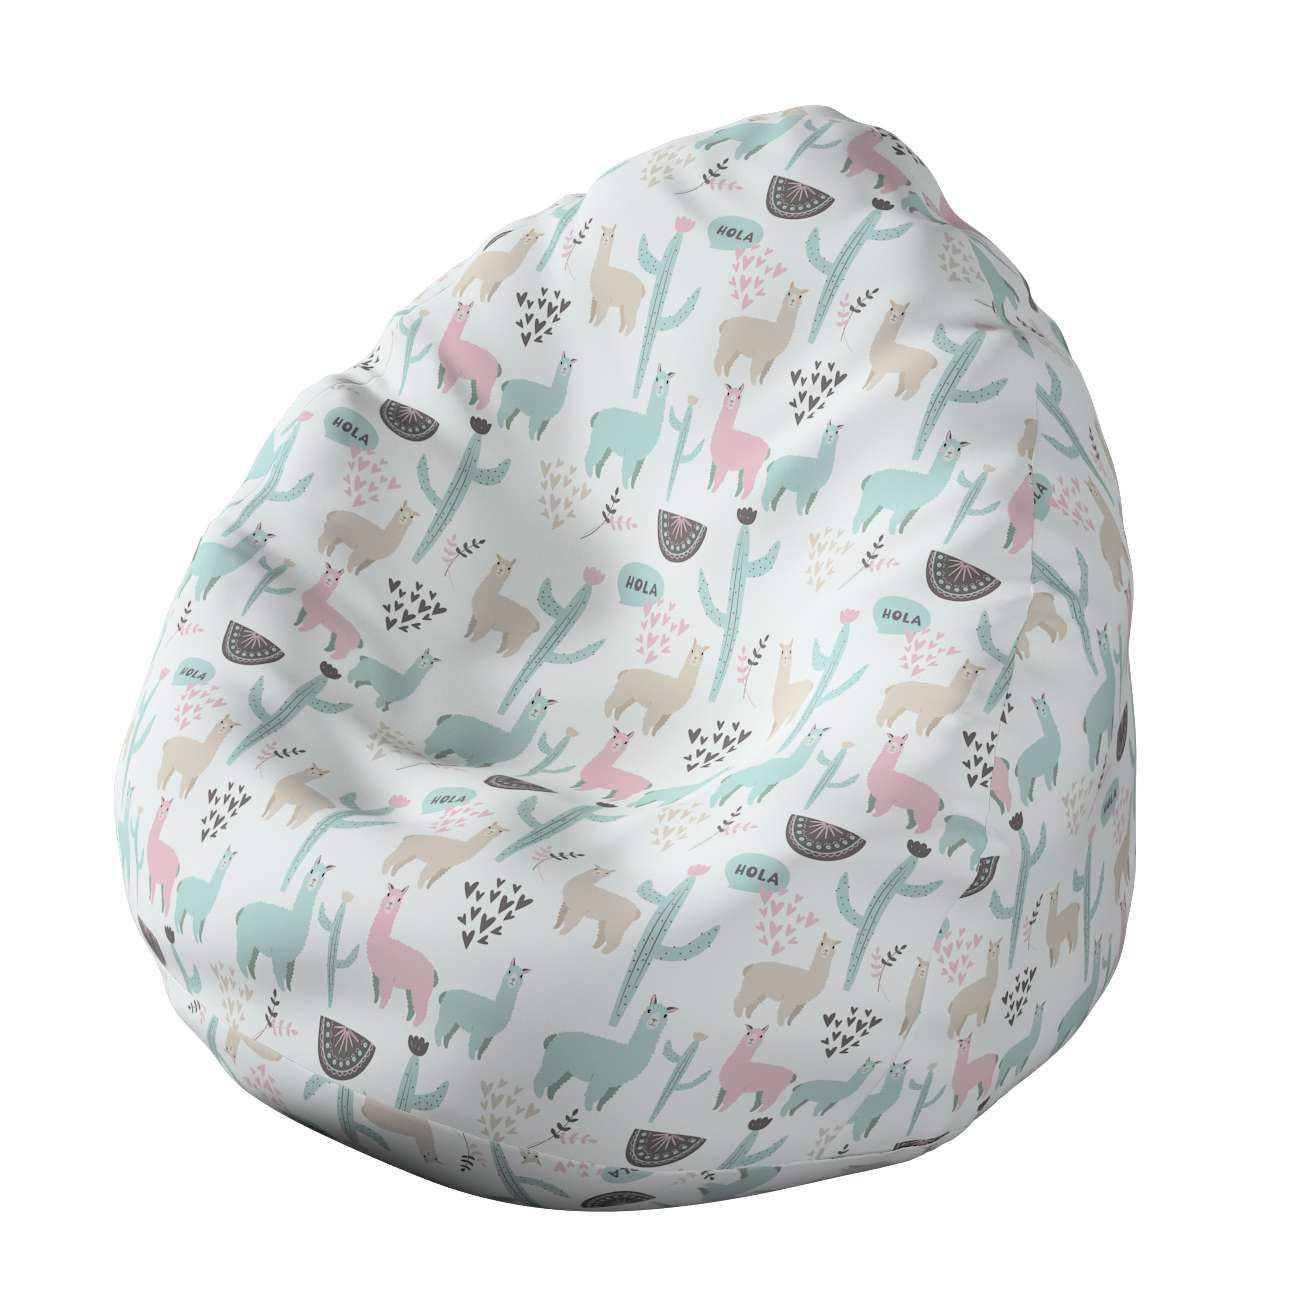 Beanbag Bowlie in collection Magic Collection, fabric: 500-01